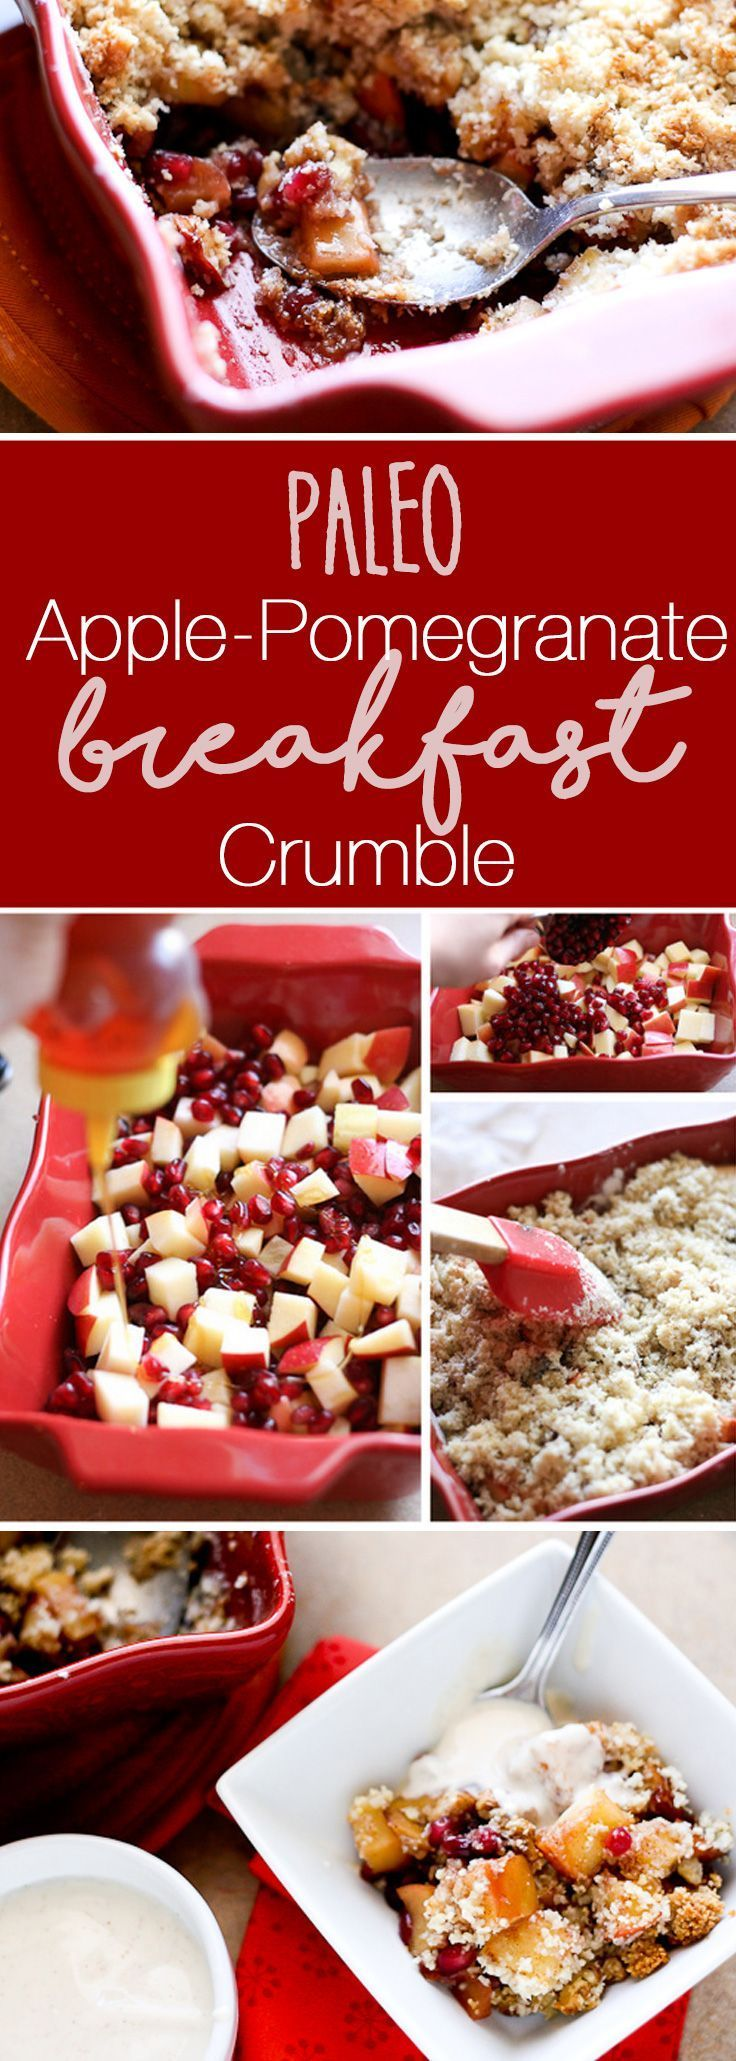 Paleo Apple-Pomegranate Breakfast Crumble | paleo recipes | breakfast recipes | apple recipes | pomegranate recipes | perrysplate.com